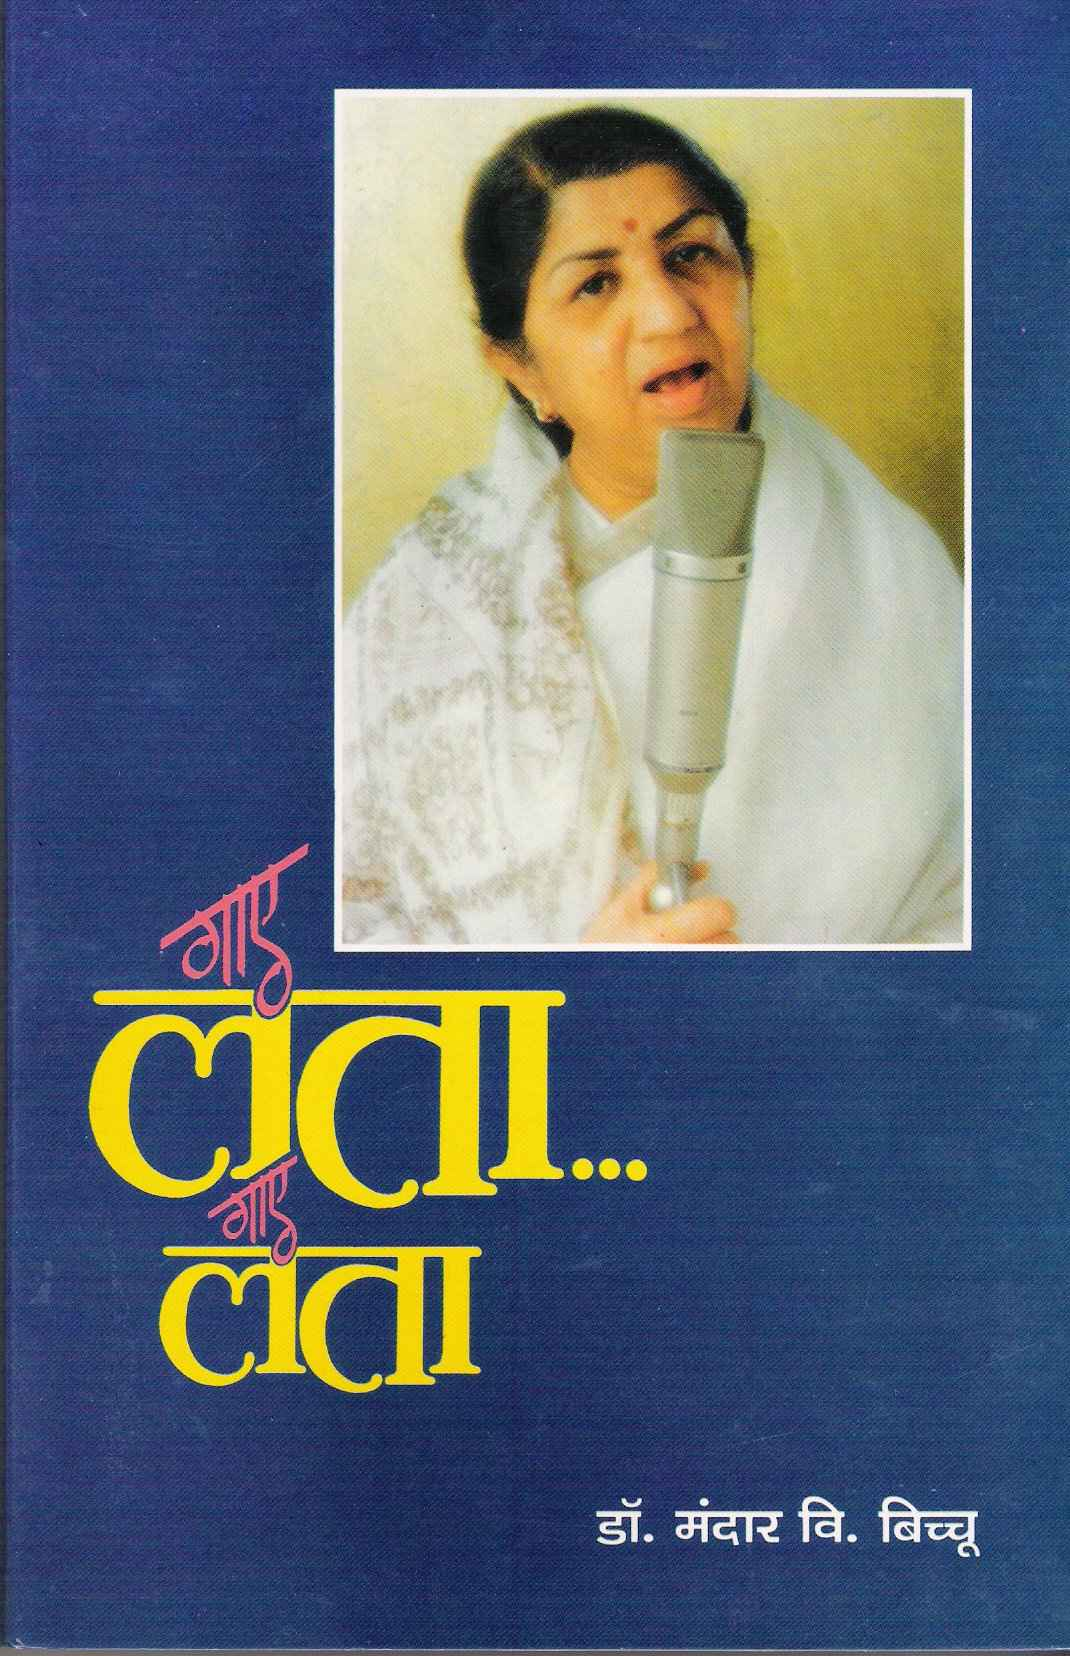 A1 Gaaye Lata (The Book Cover)